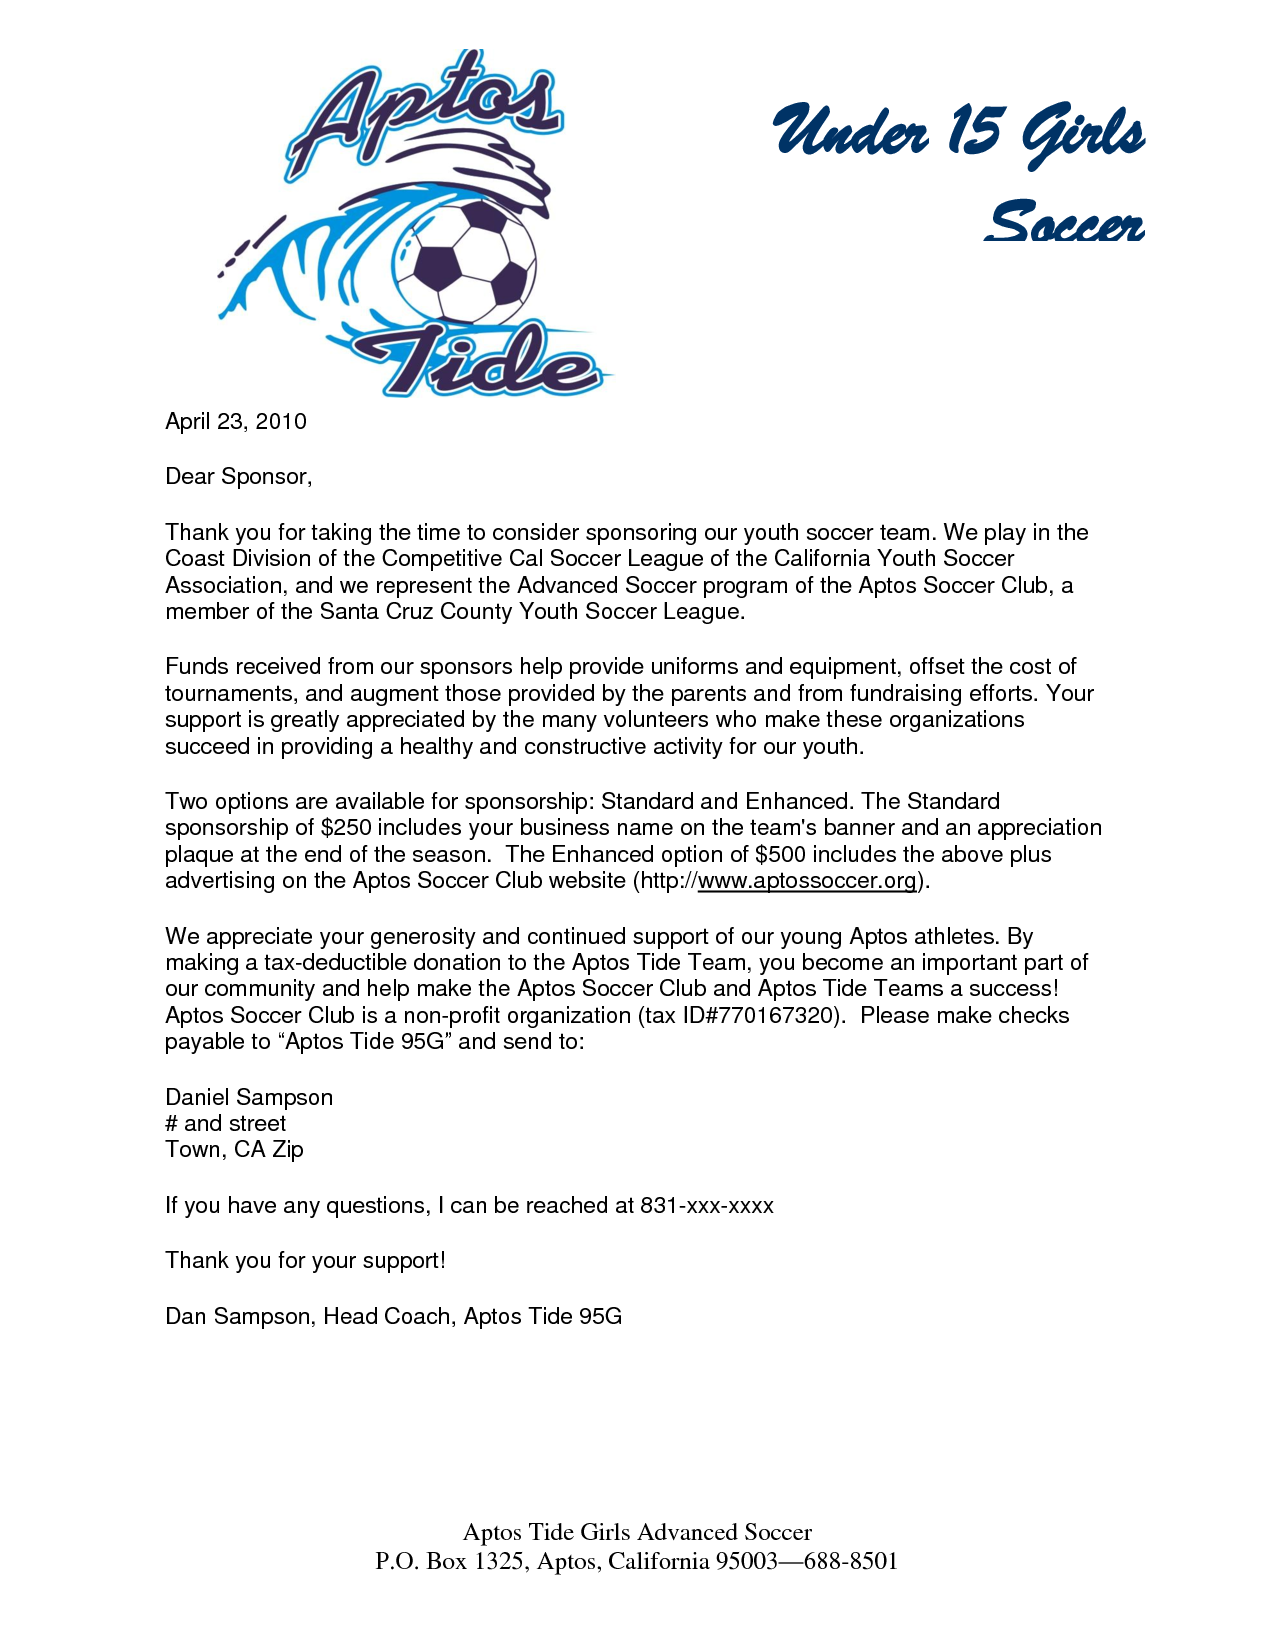 parent thank you letter from youth athletes – Letter Sponsorship